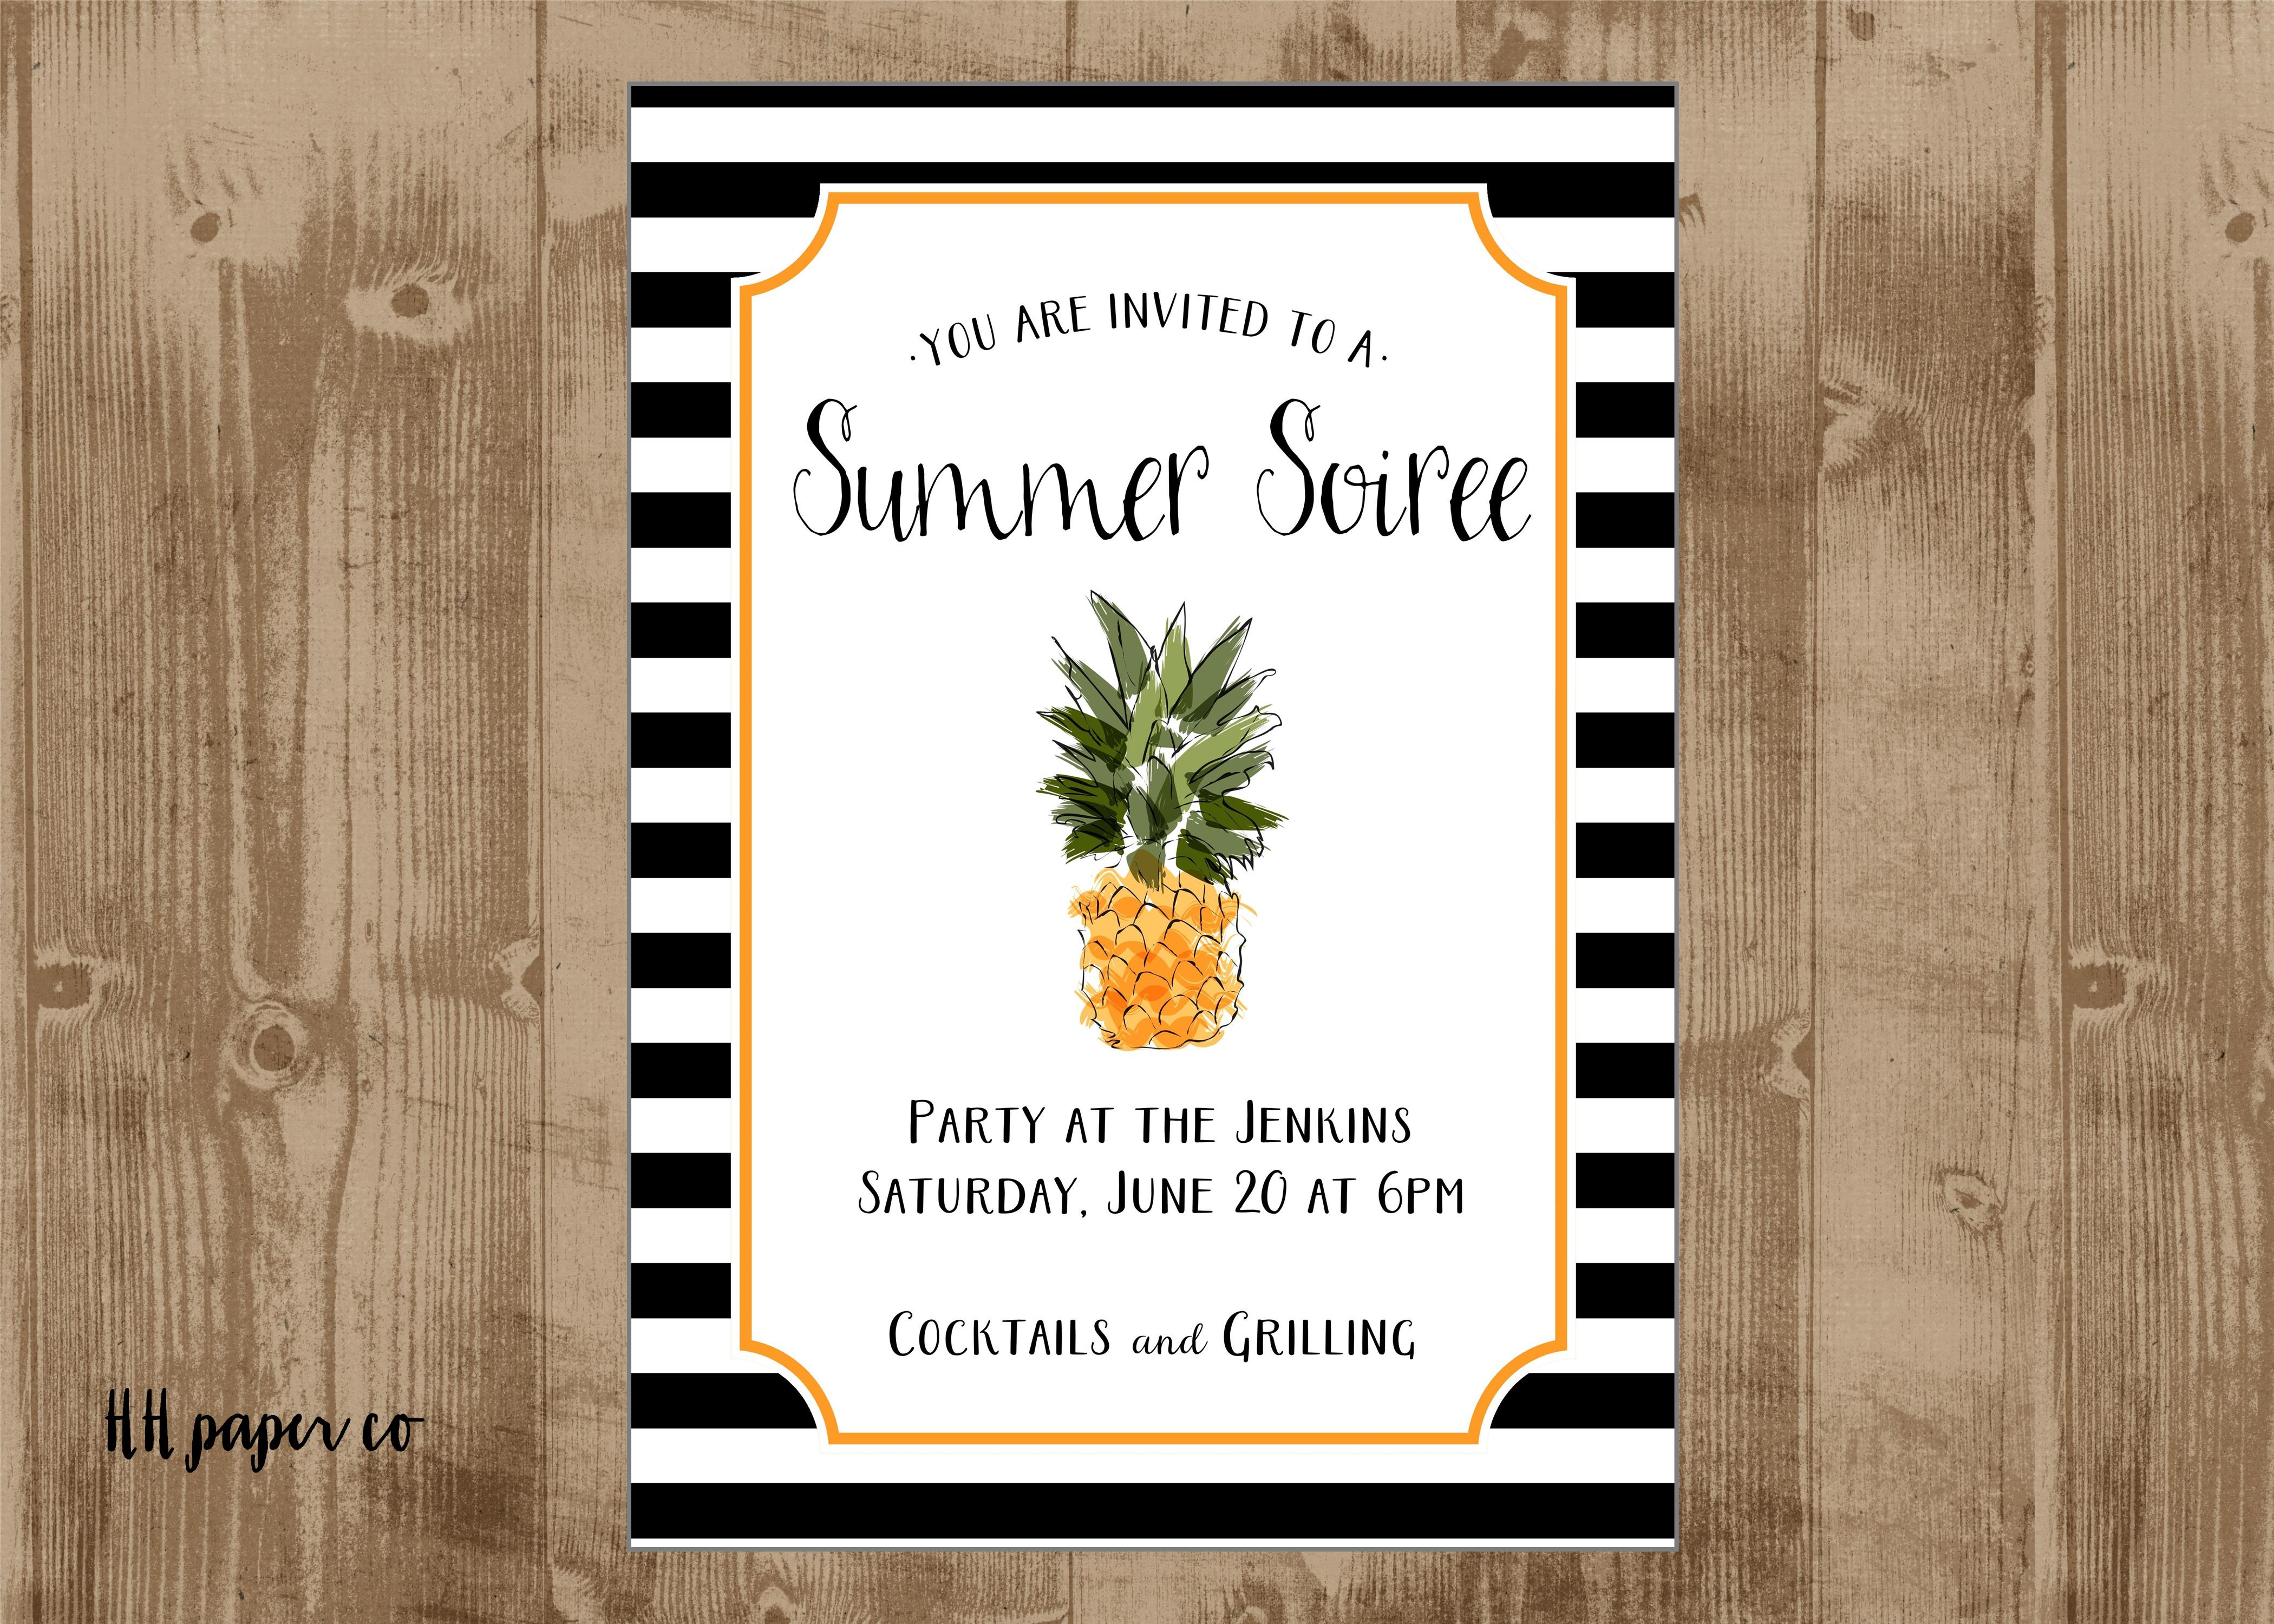 Printable Pinele Invite Black And White Stripes Summe Soiree Shower Wedding Welcome Rehearsal Dinner